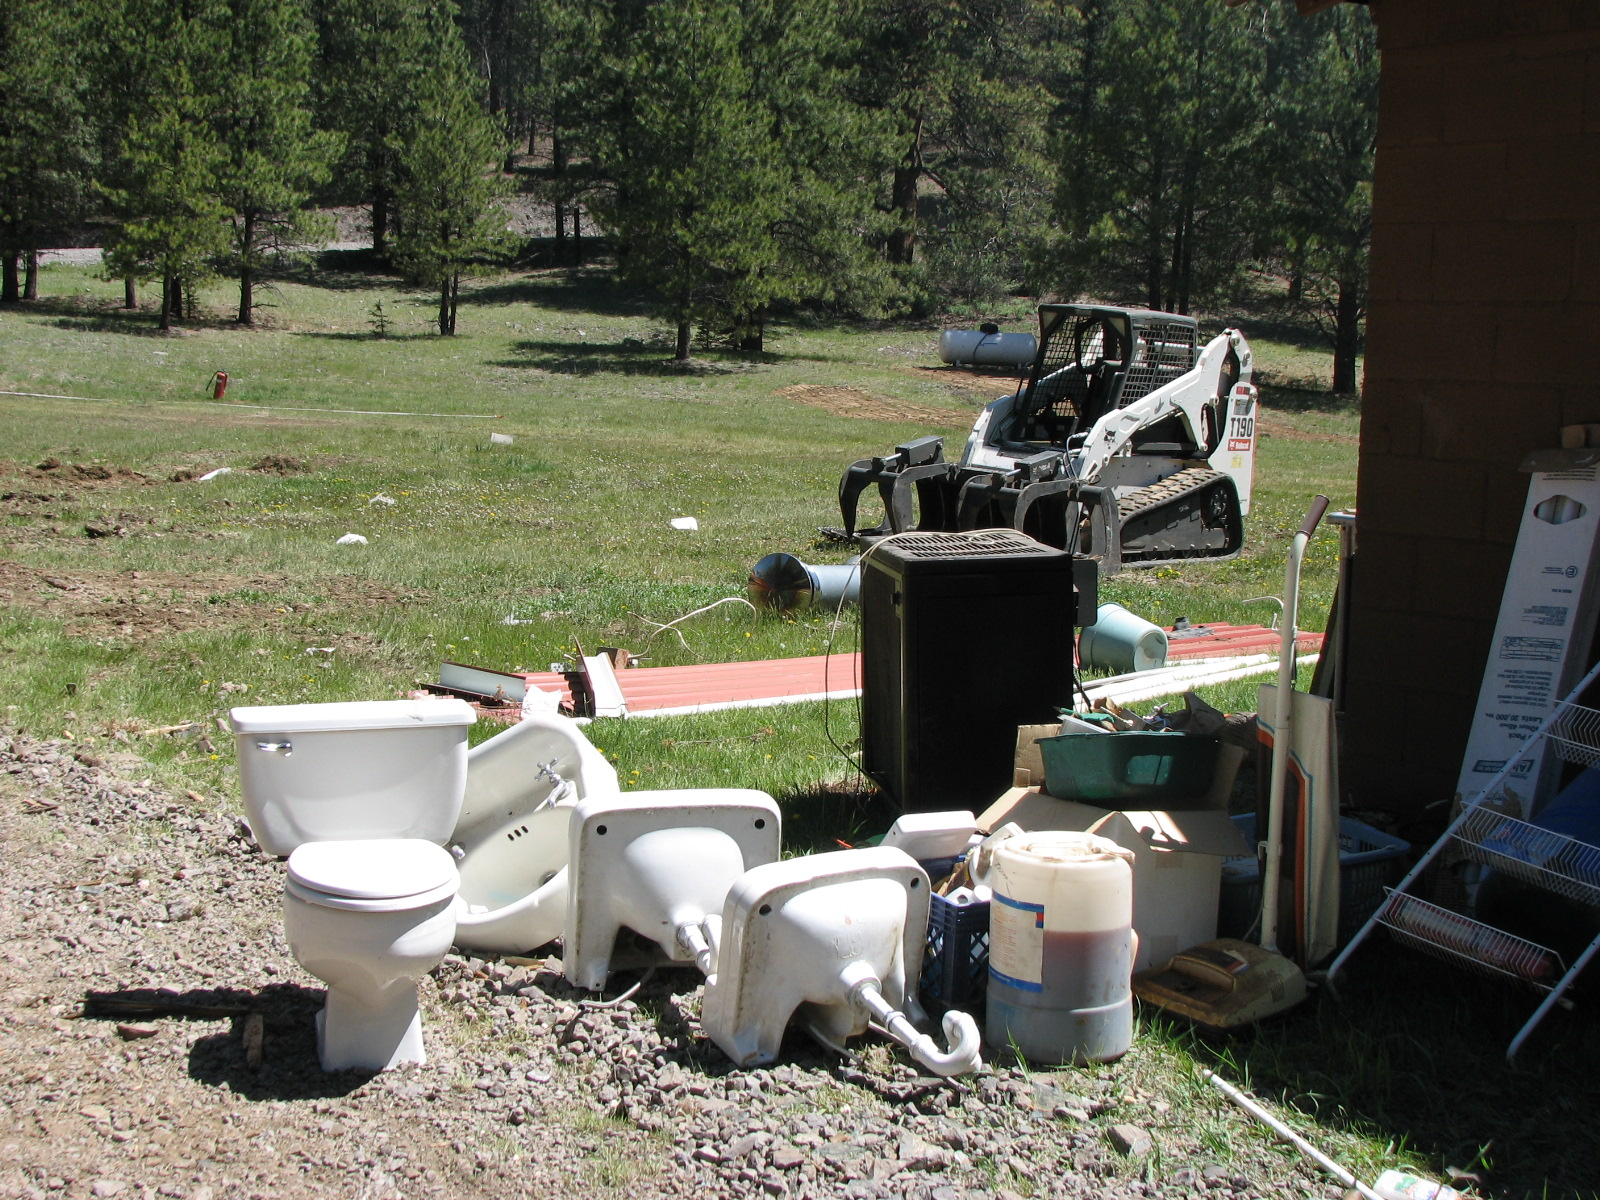 Out with the old, broken toilets & sinks